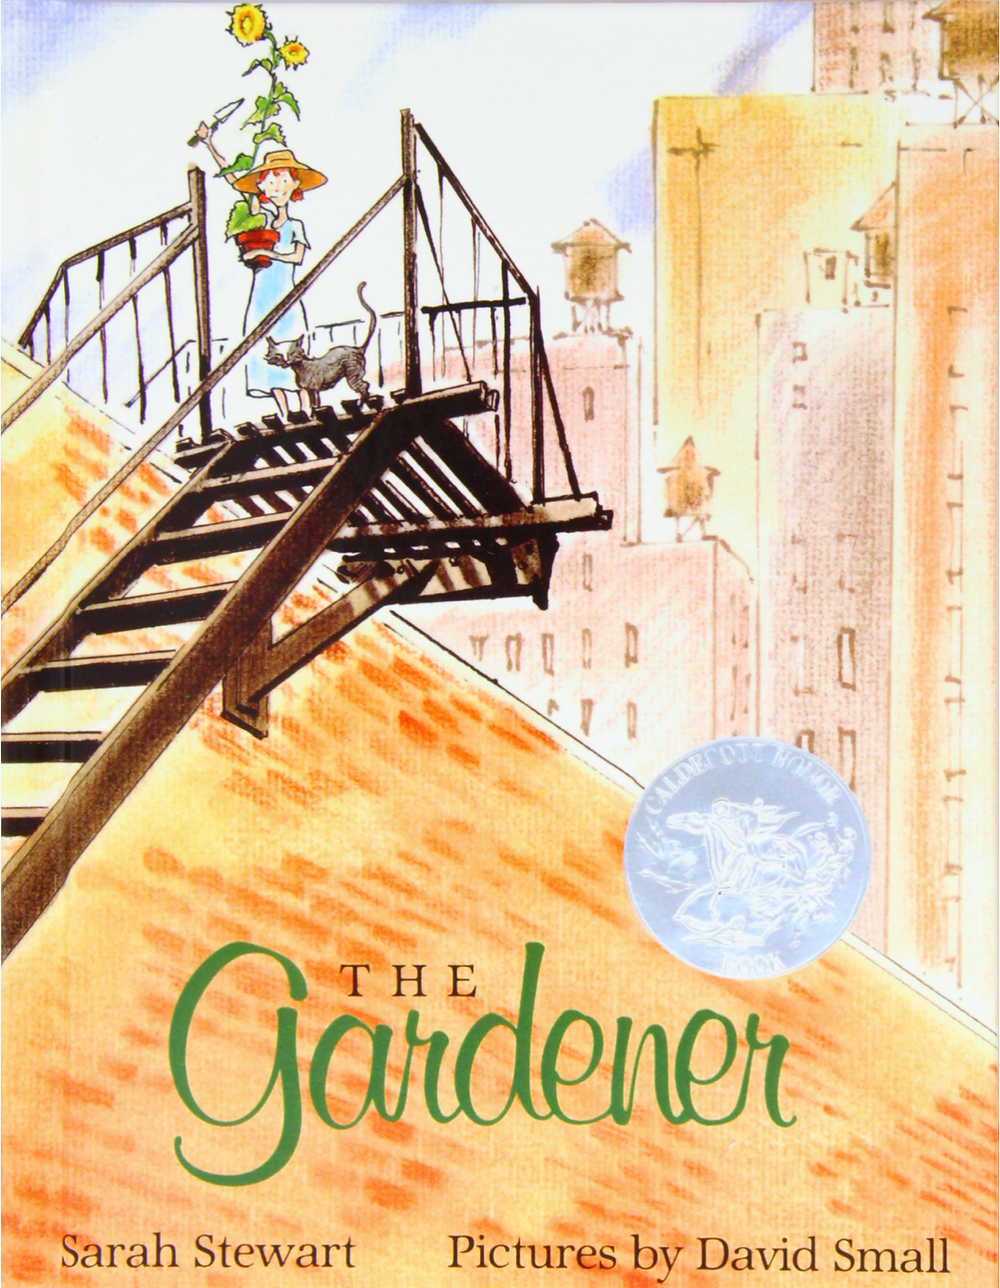 The Gardener picture book by Sarah Stewart Pictures by David Small shows woman holding plant standing on a fire escape in the city with a cat next to her